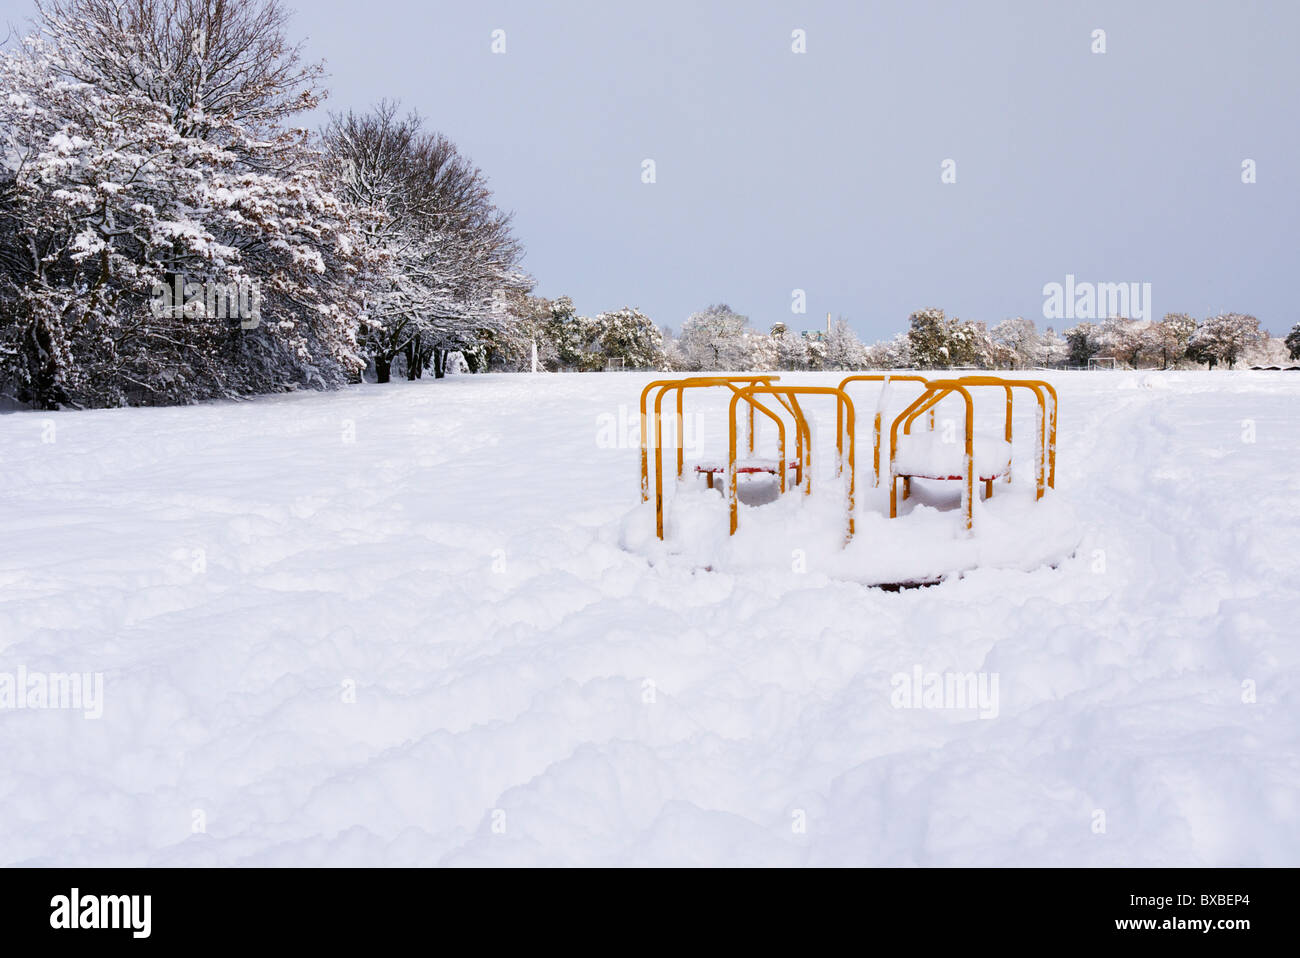 Heavy snow fall in the park - Stock Image